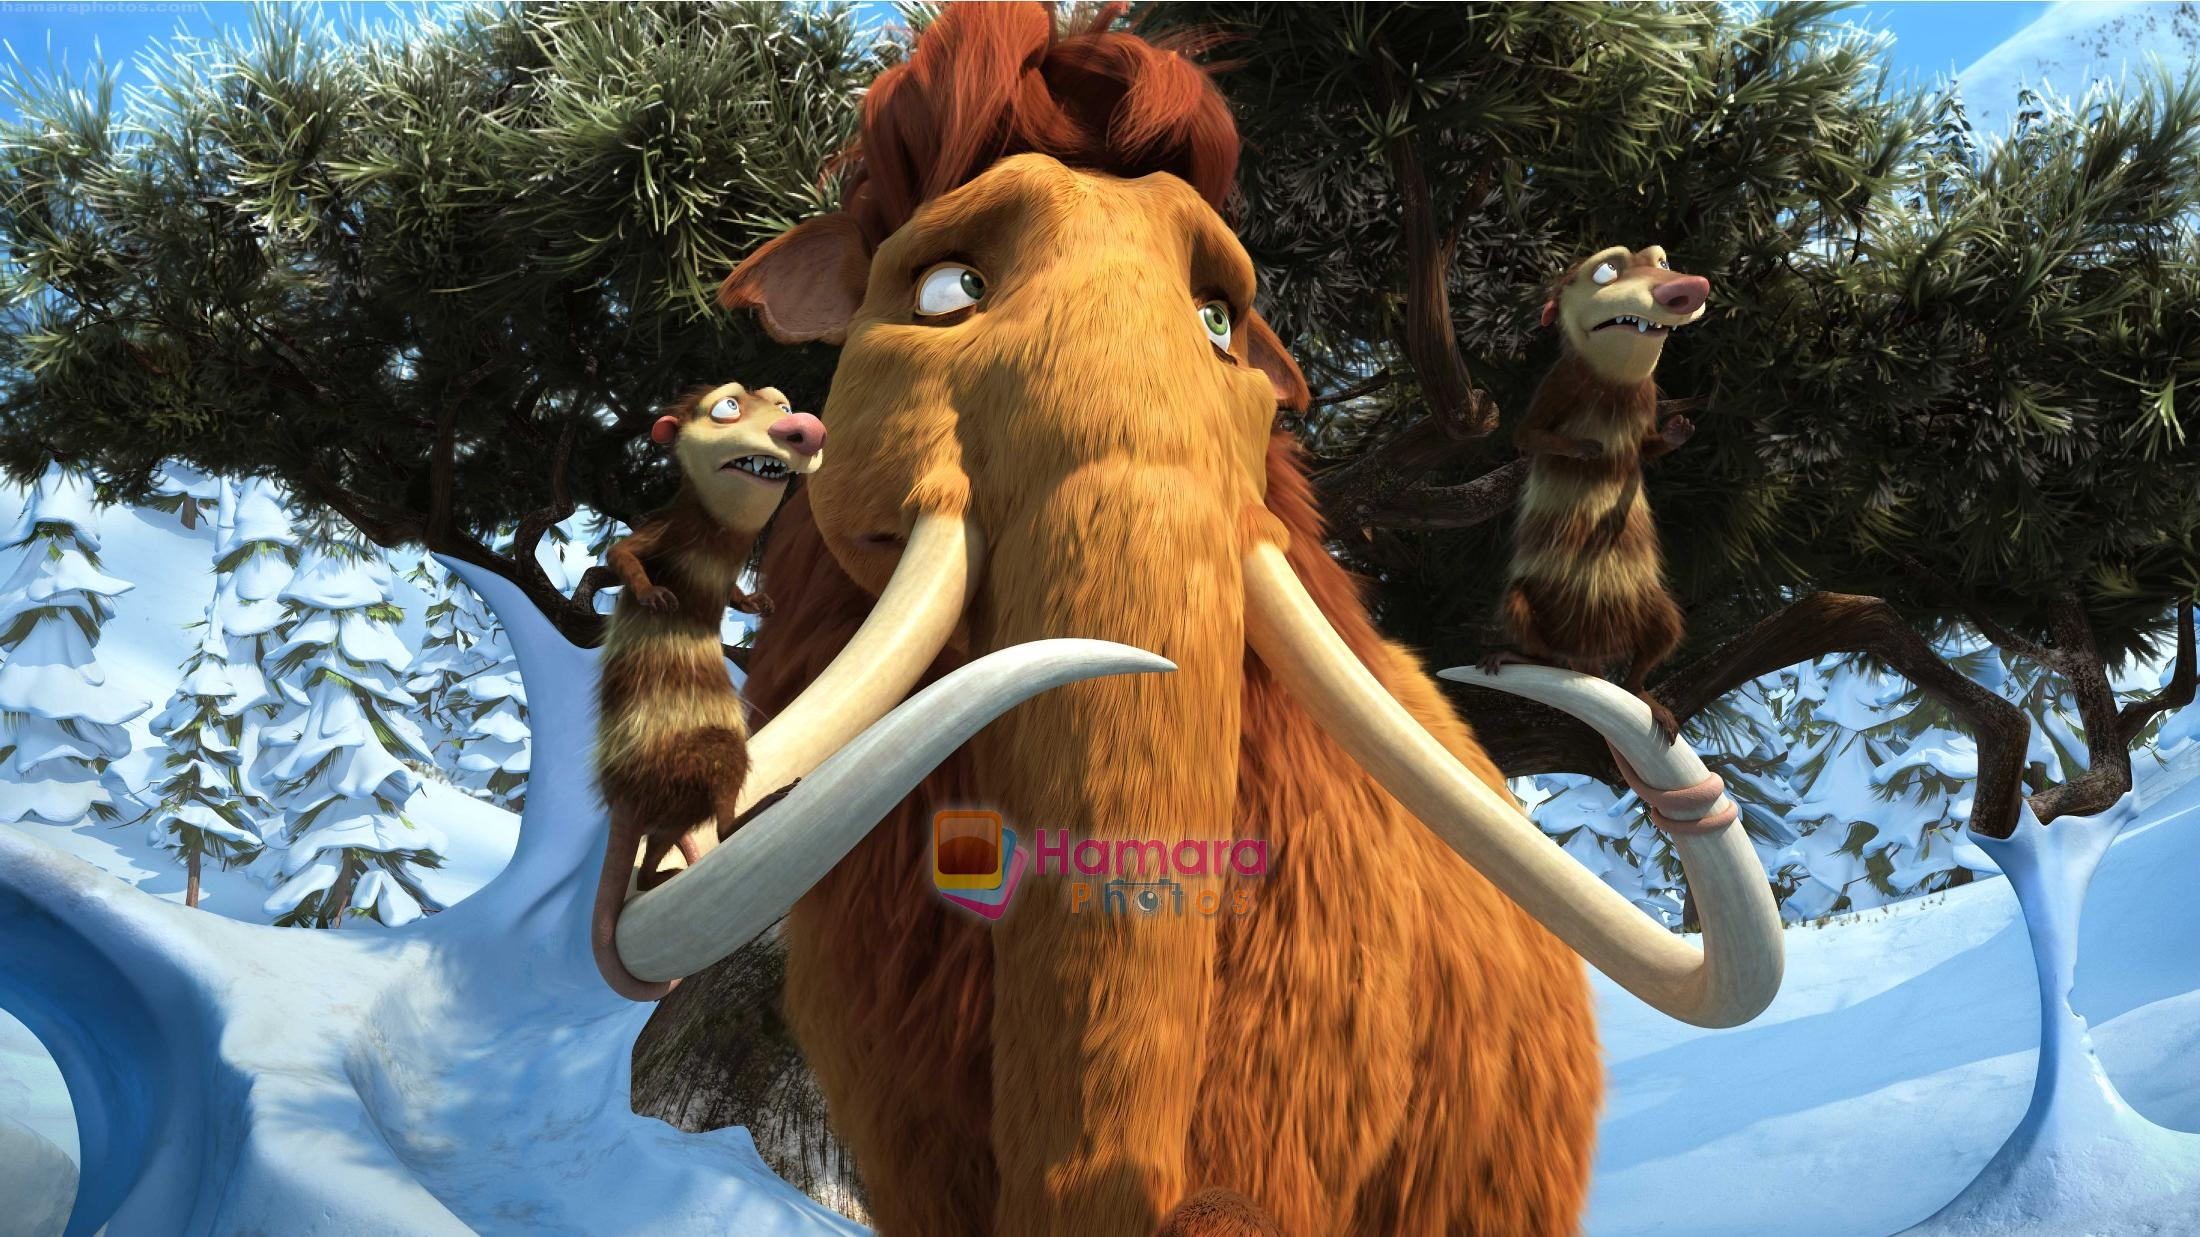 ellie with crash & eddie in the still from movie ice age 3 / ice